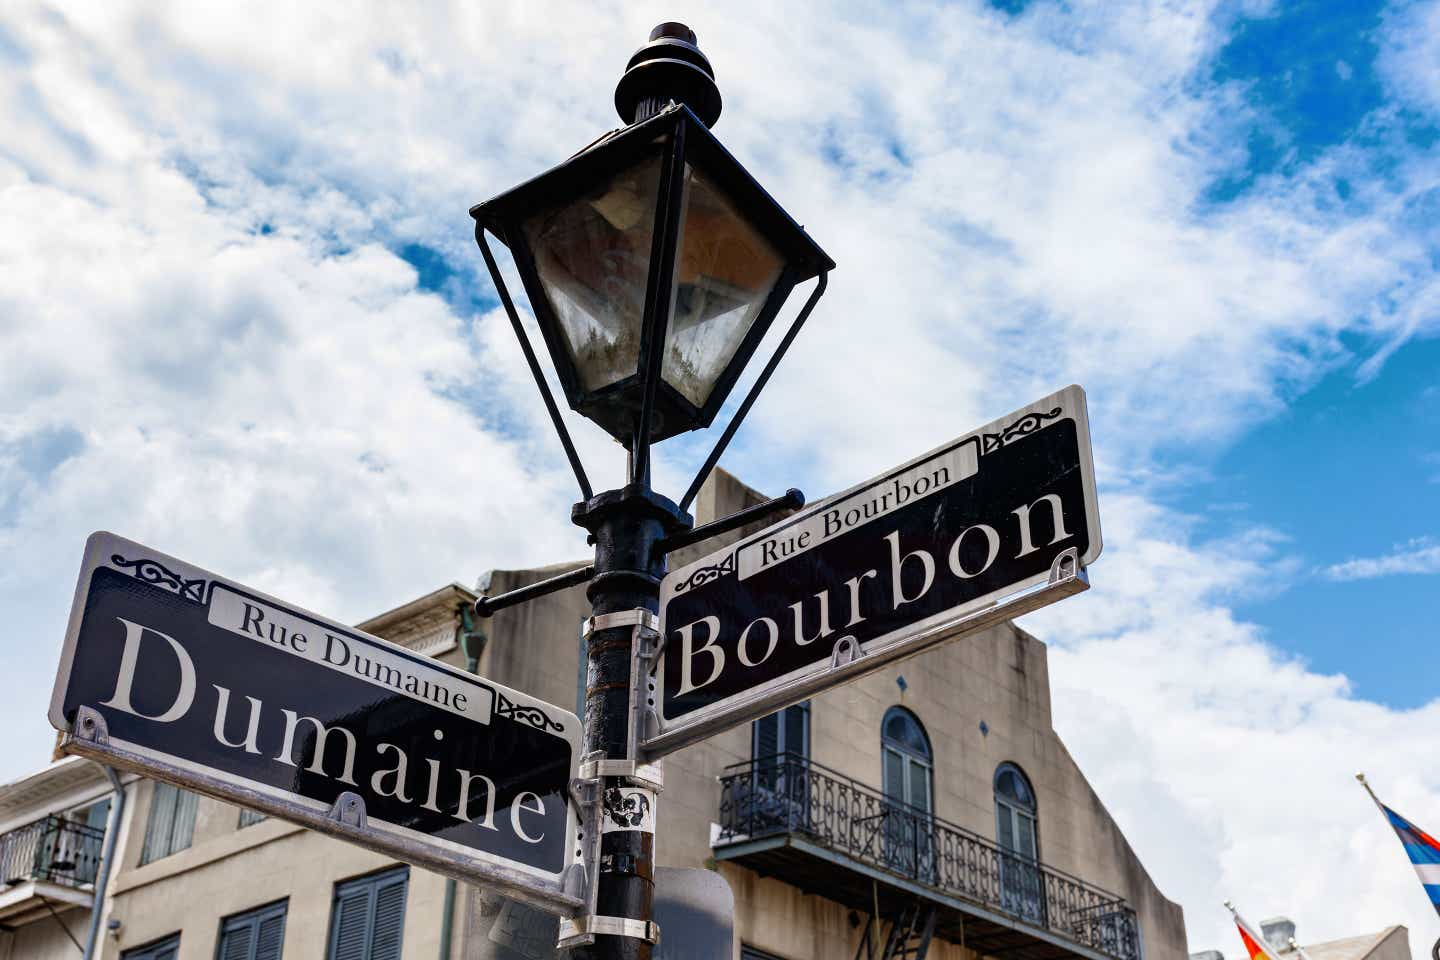 A black lamppost indicating the streets of 'Dumaine' (left) and 'Bourbon' (right) under a cloudy blue sky.